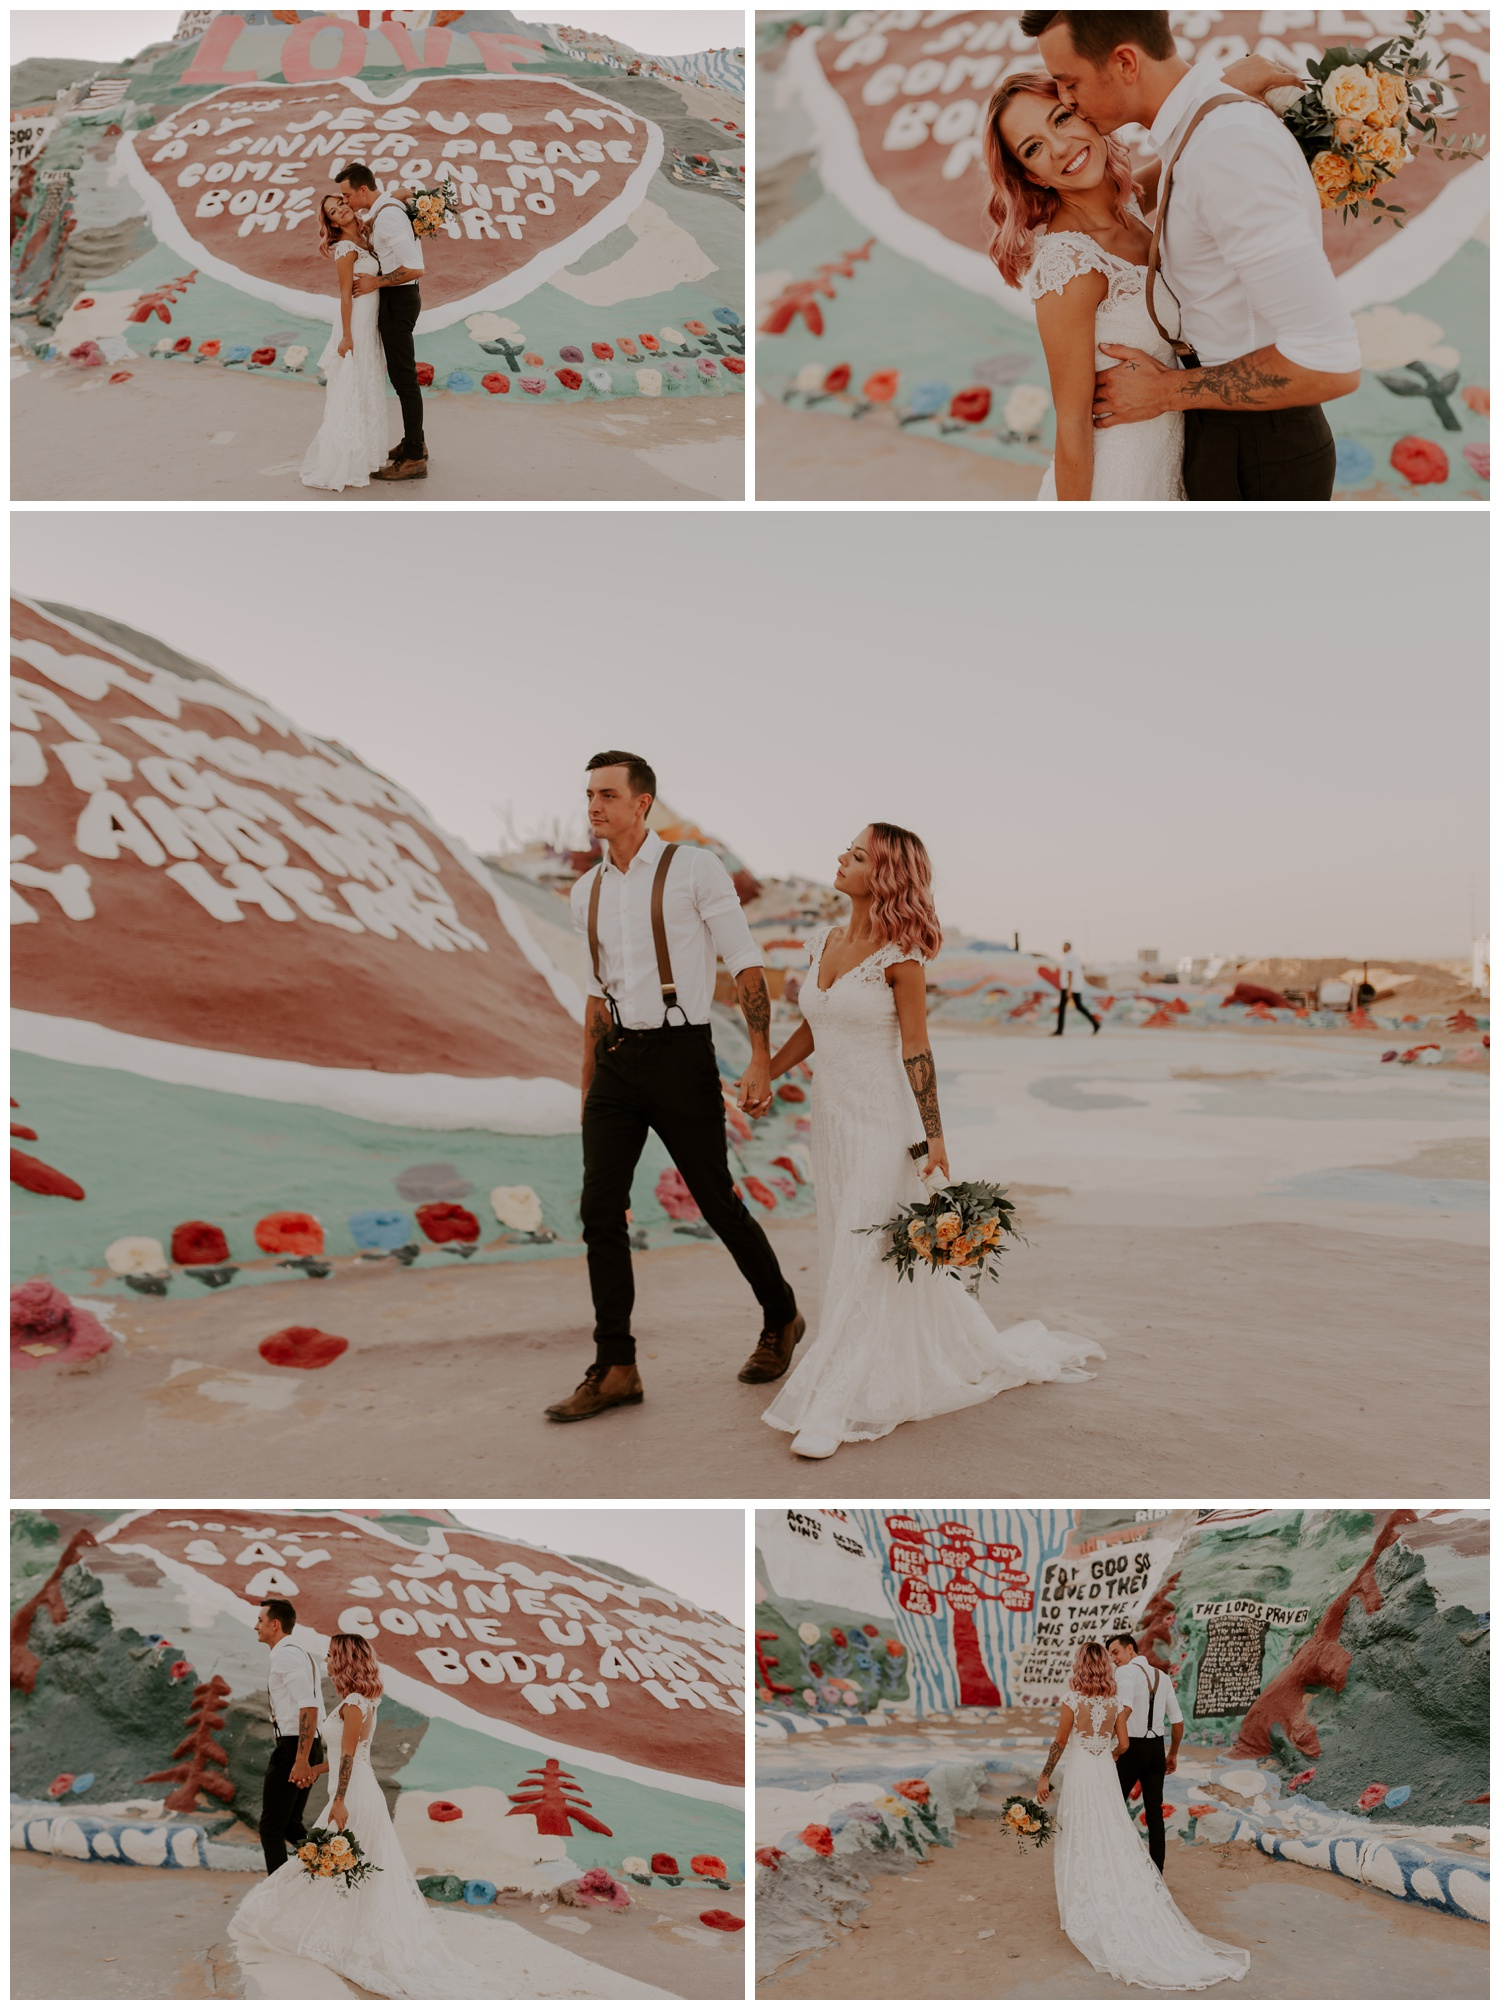 Salvation Mountain Elopement Palm Springs Pink Hair Bride - Jessica Heron Images_0119.jpg